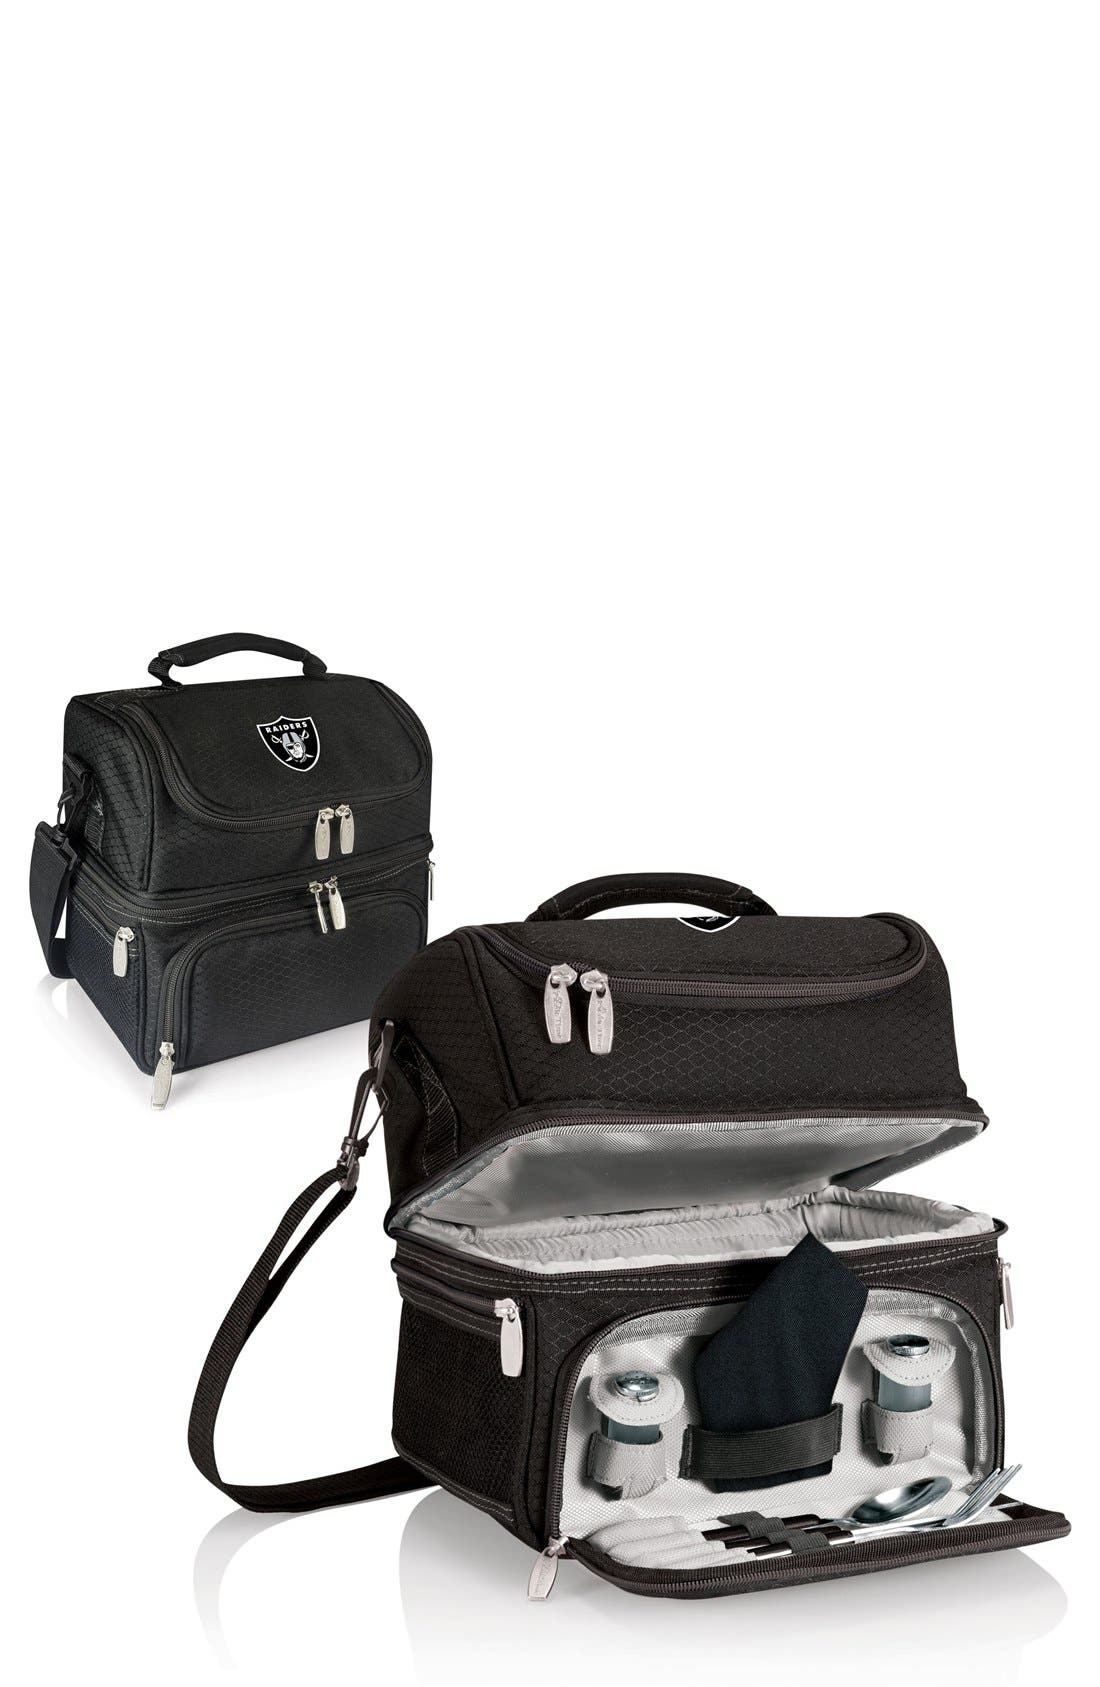 'Pranzo' NFL Insulated Lunch Box,                             Alternate thumbnail 2, color,                             Oakland Raiders/ Black